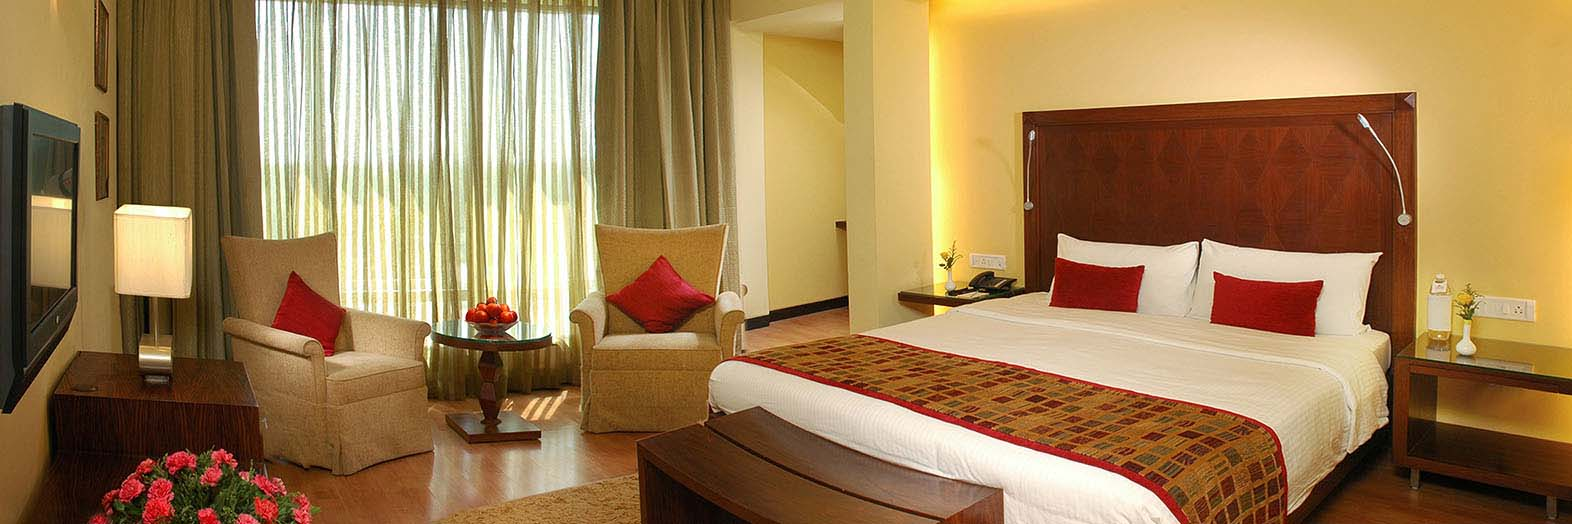 Accomodation in Indore